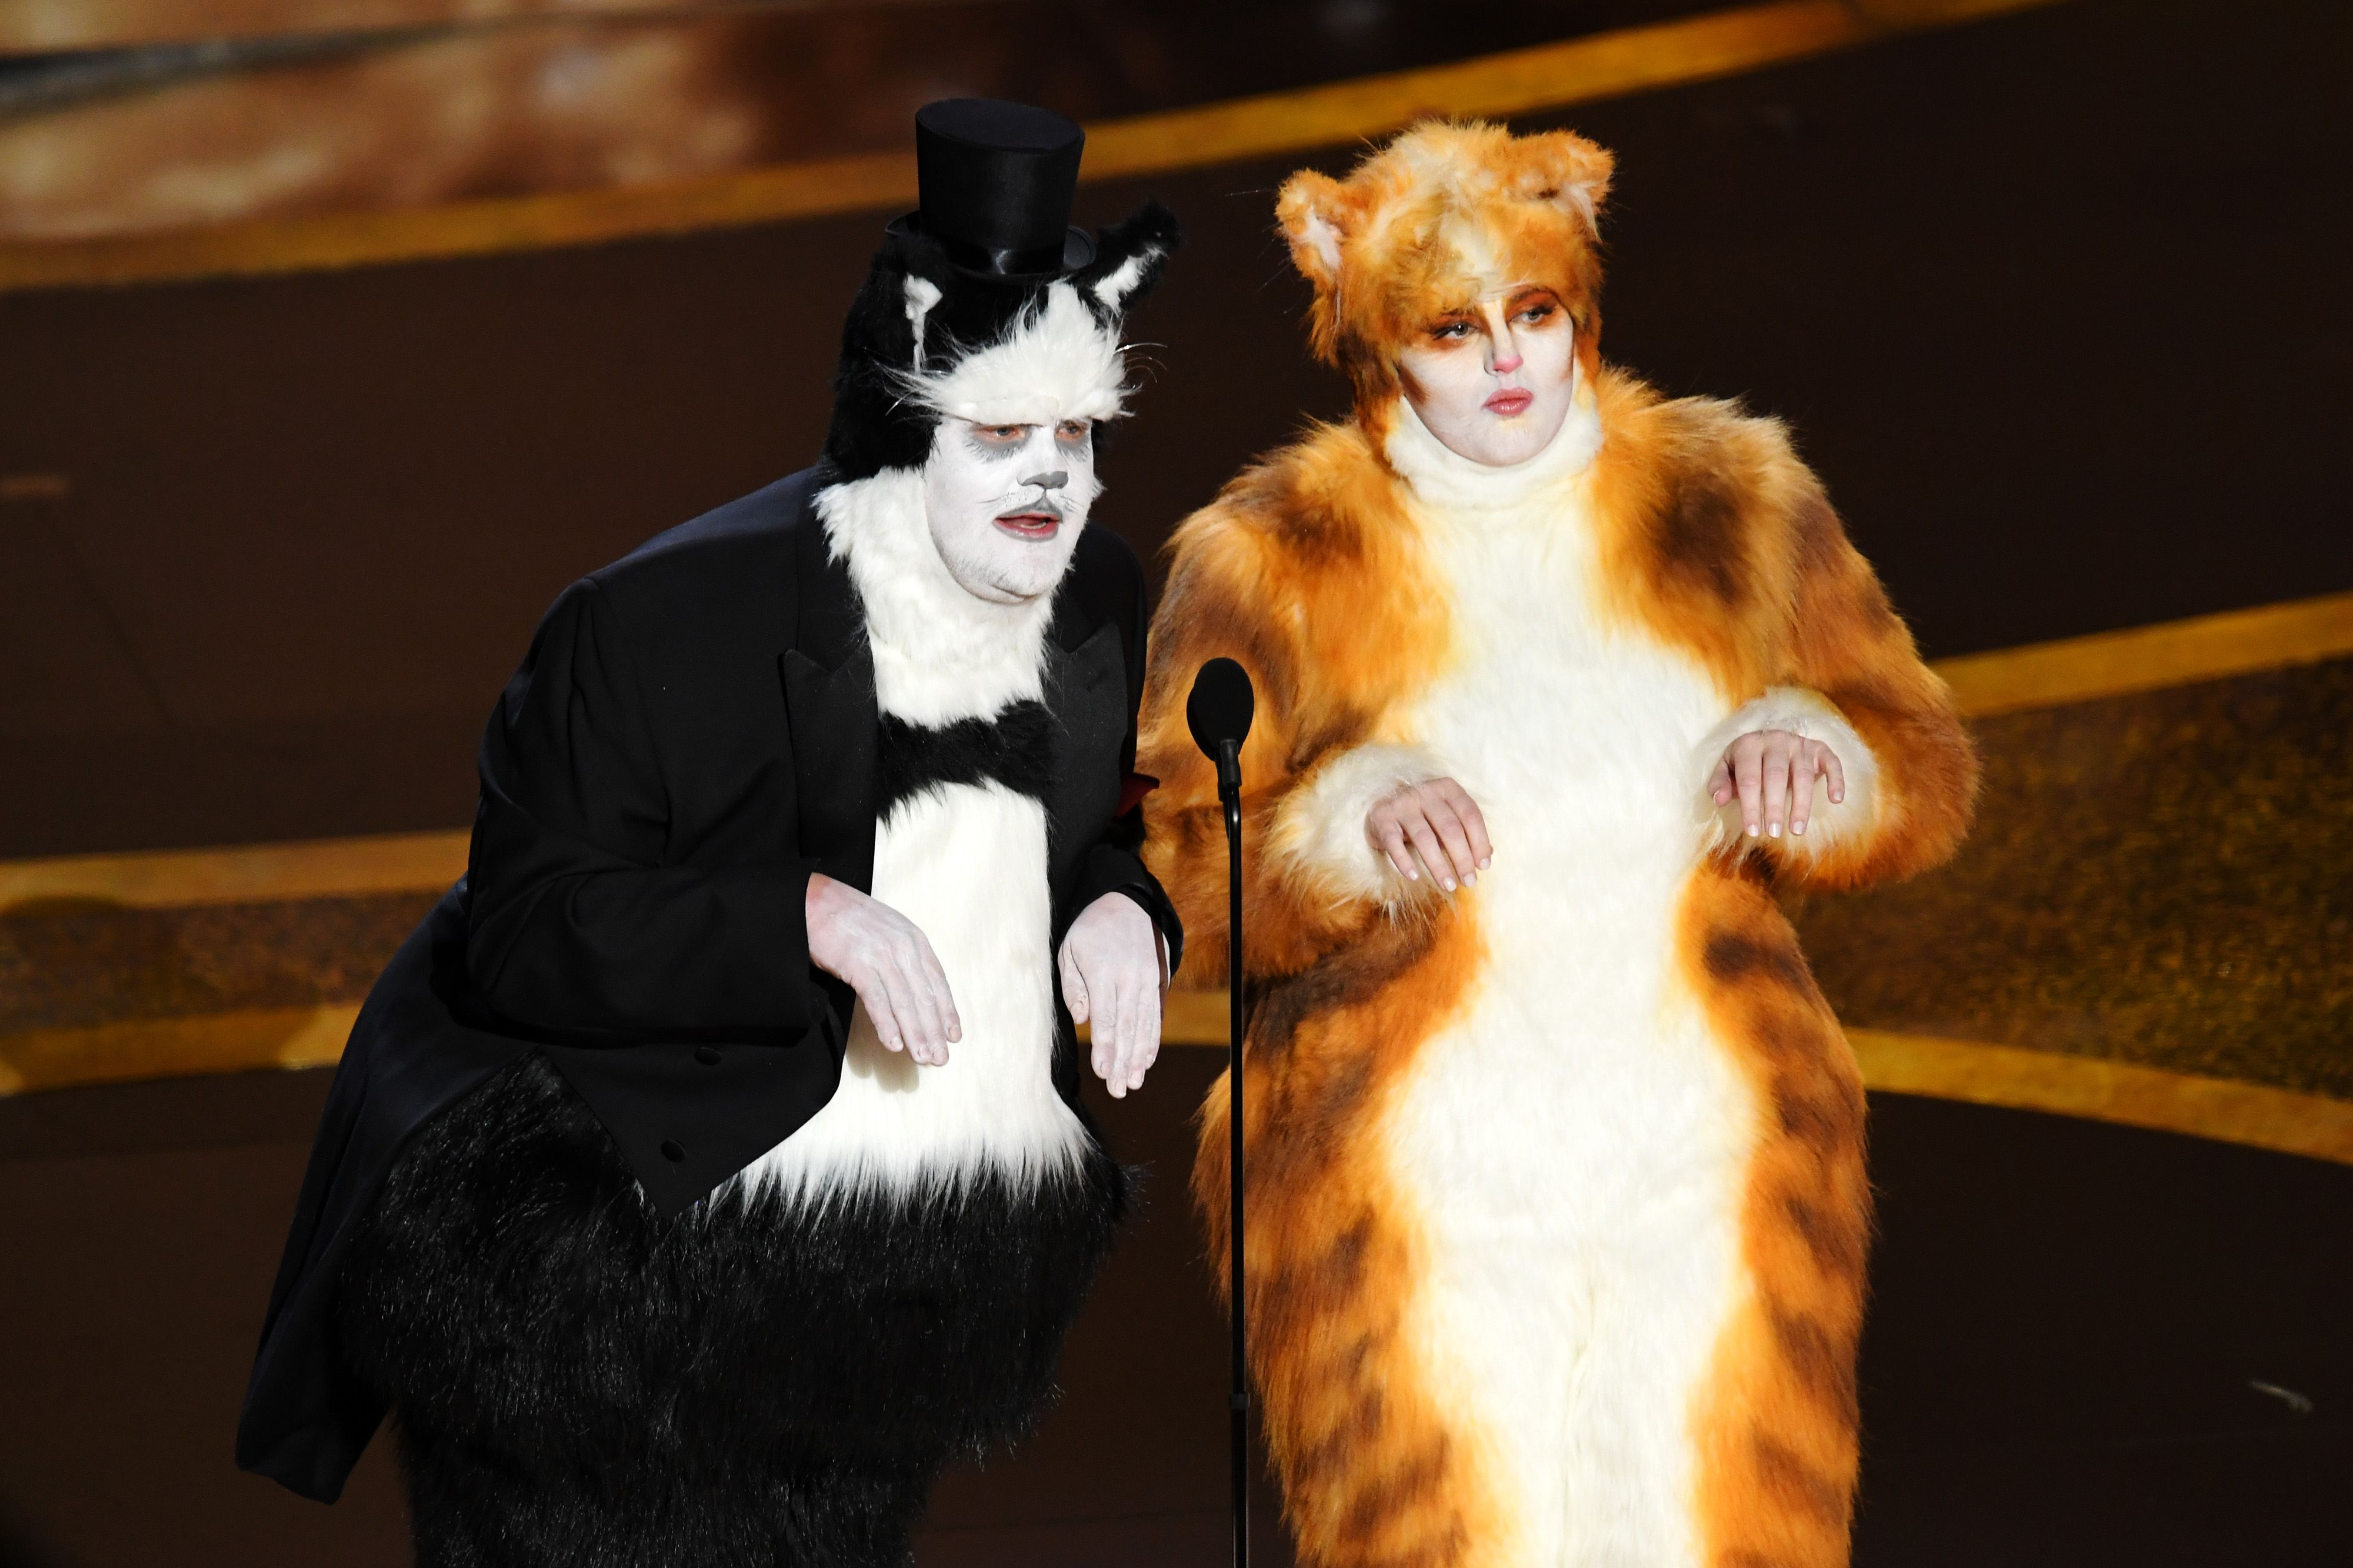 James Corden and Rebel Wilson Sparked More Cats Drama With Their Oscars Joke